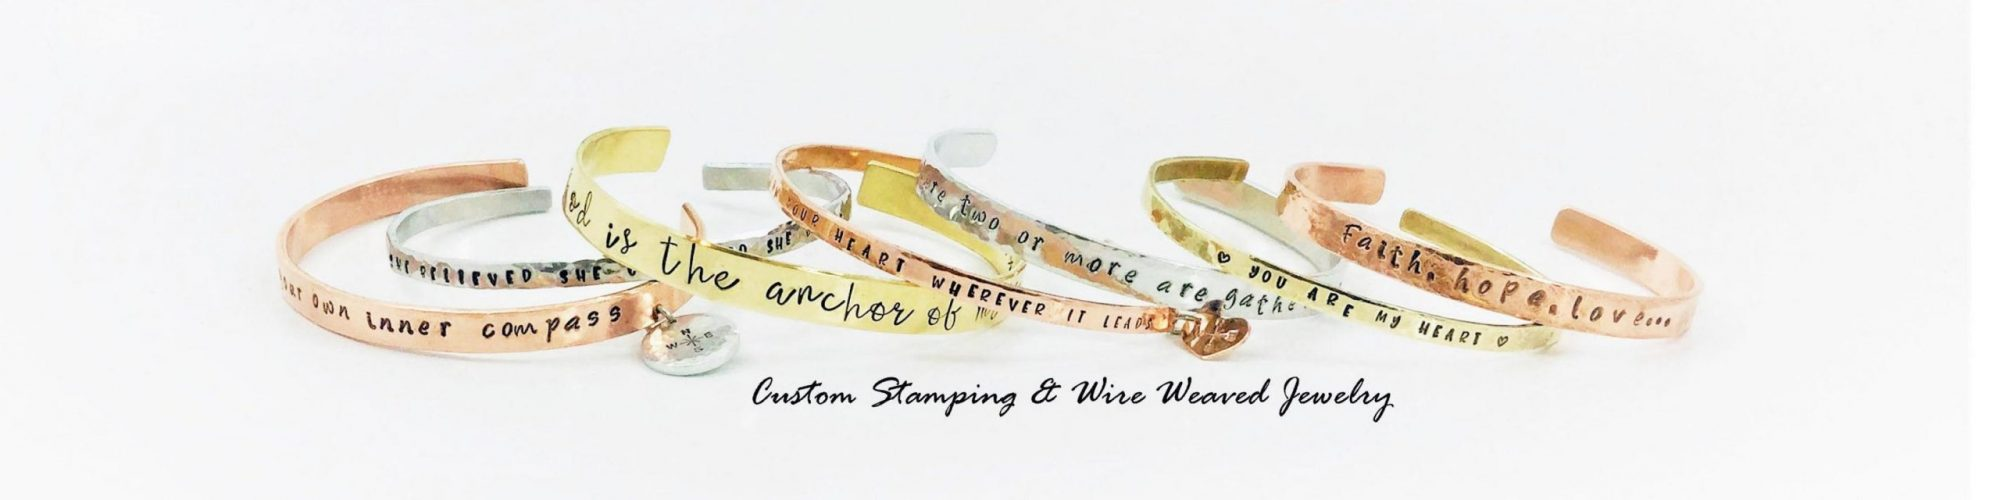 Stamping Cat Studio Header